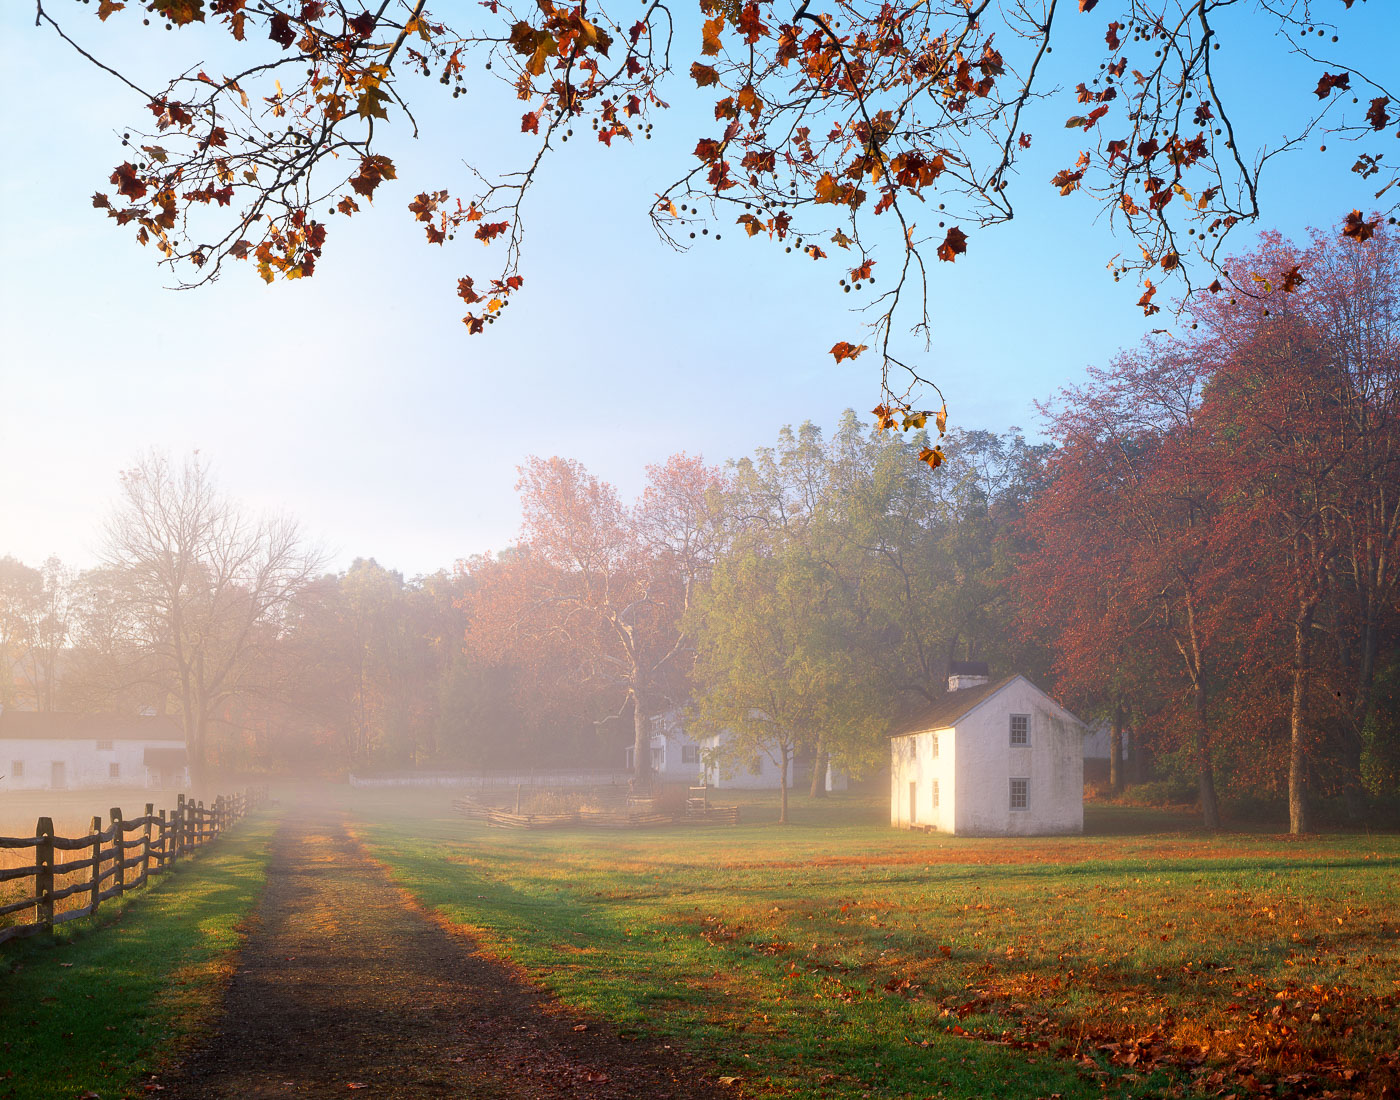 Fog rising over country road leading into Hopewell Furnace National Historic Site, Pennsylvania